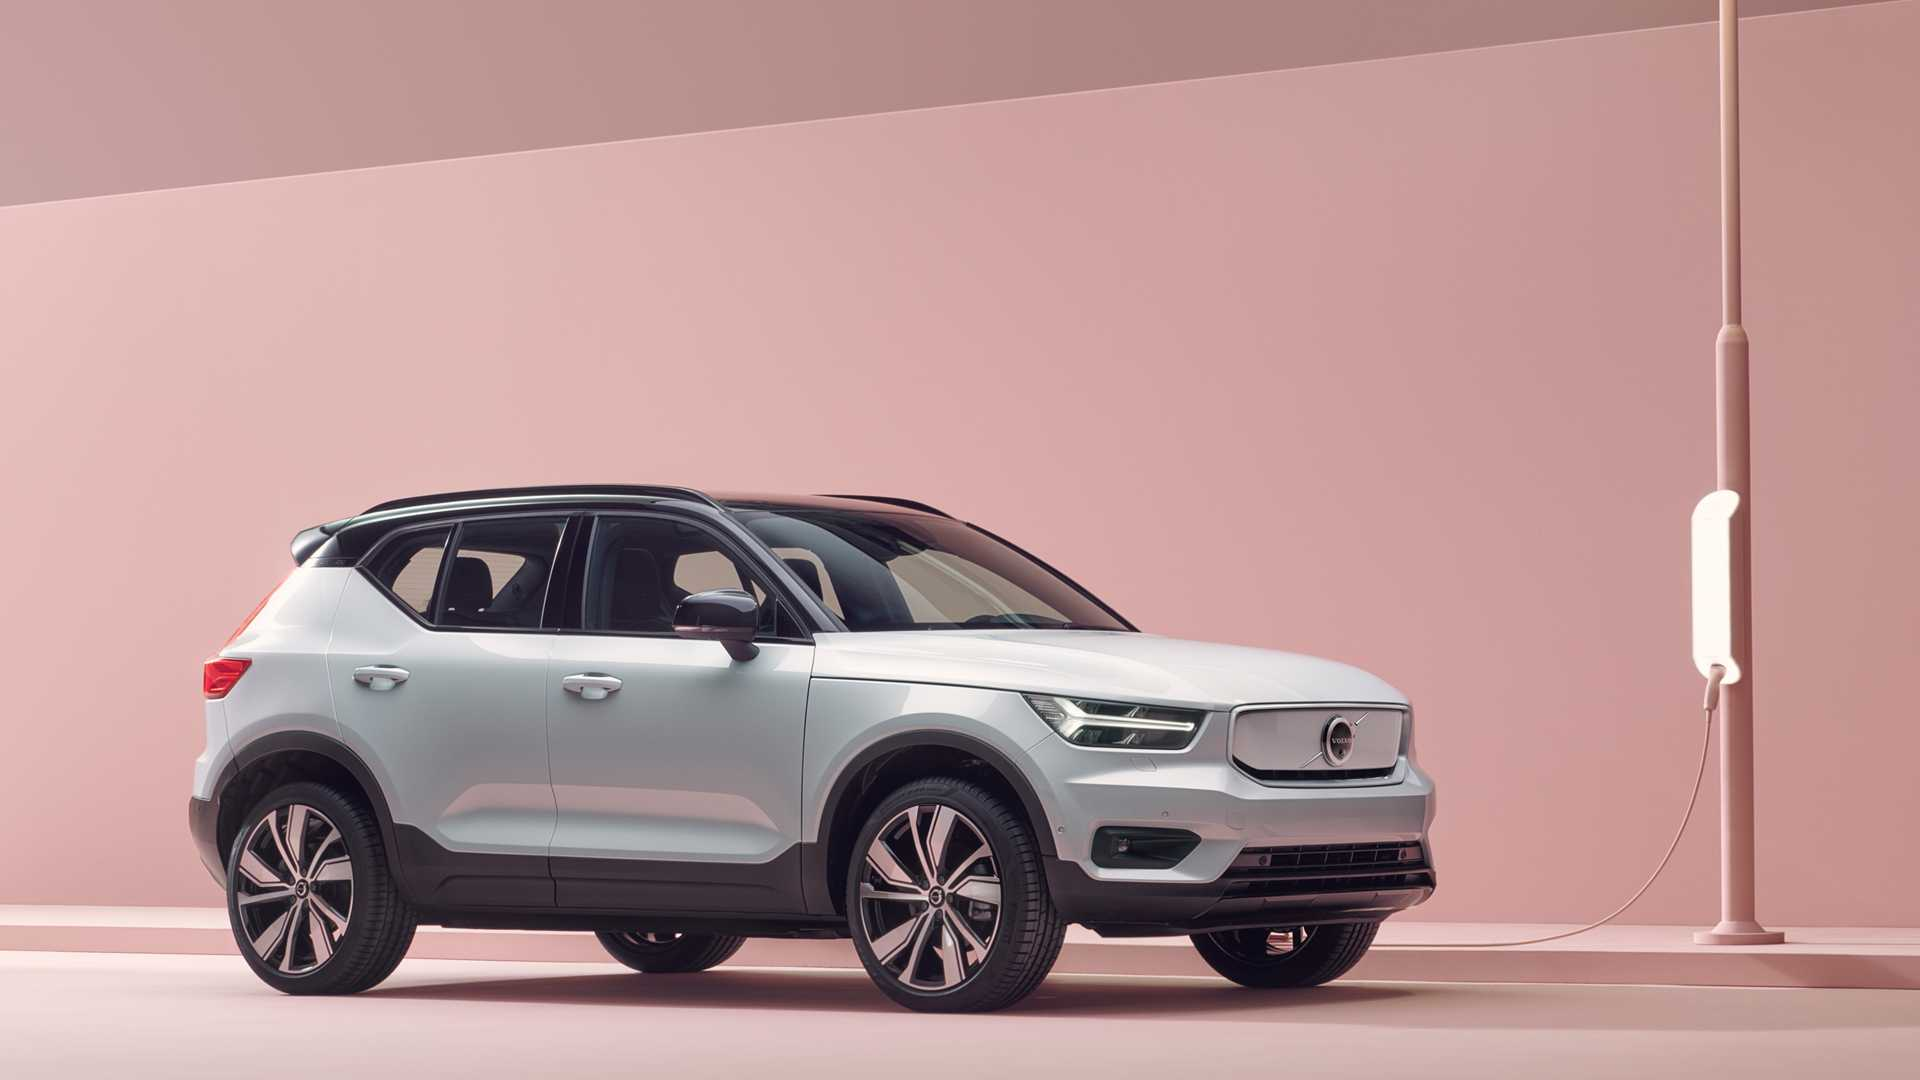 2021 Volvo XC40 Recharge revealed - Drive Section